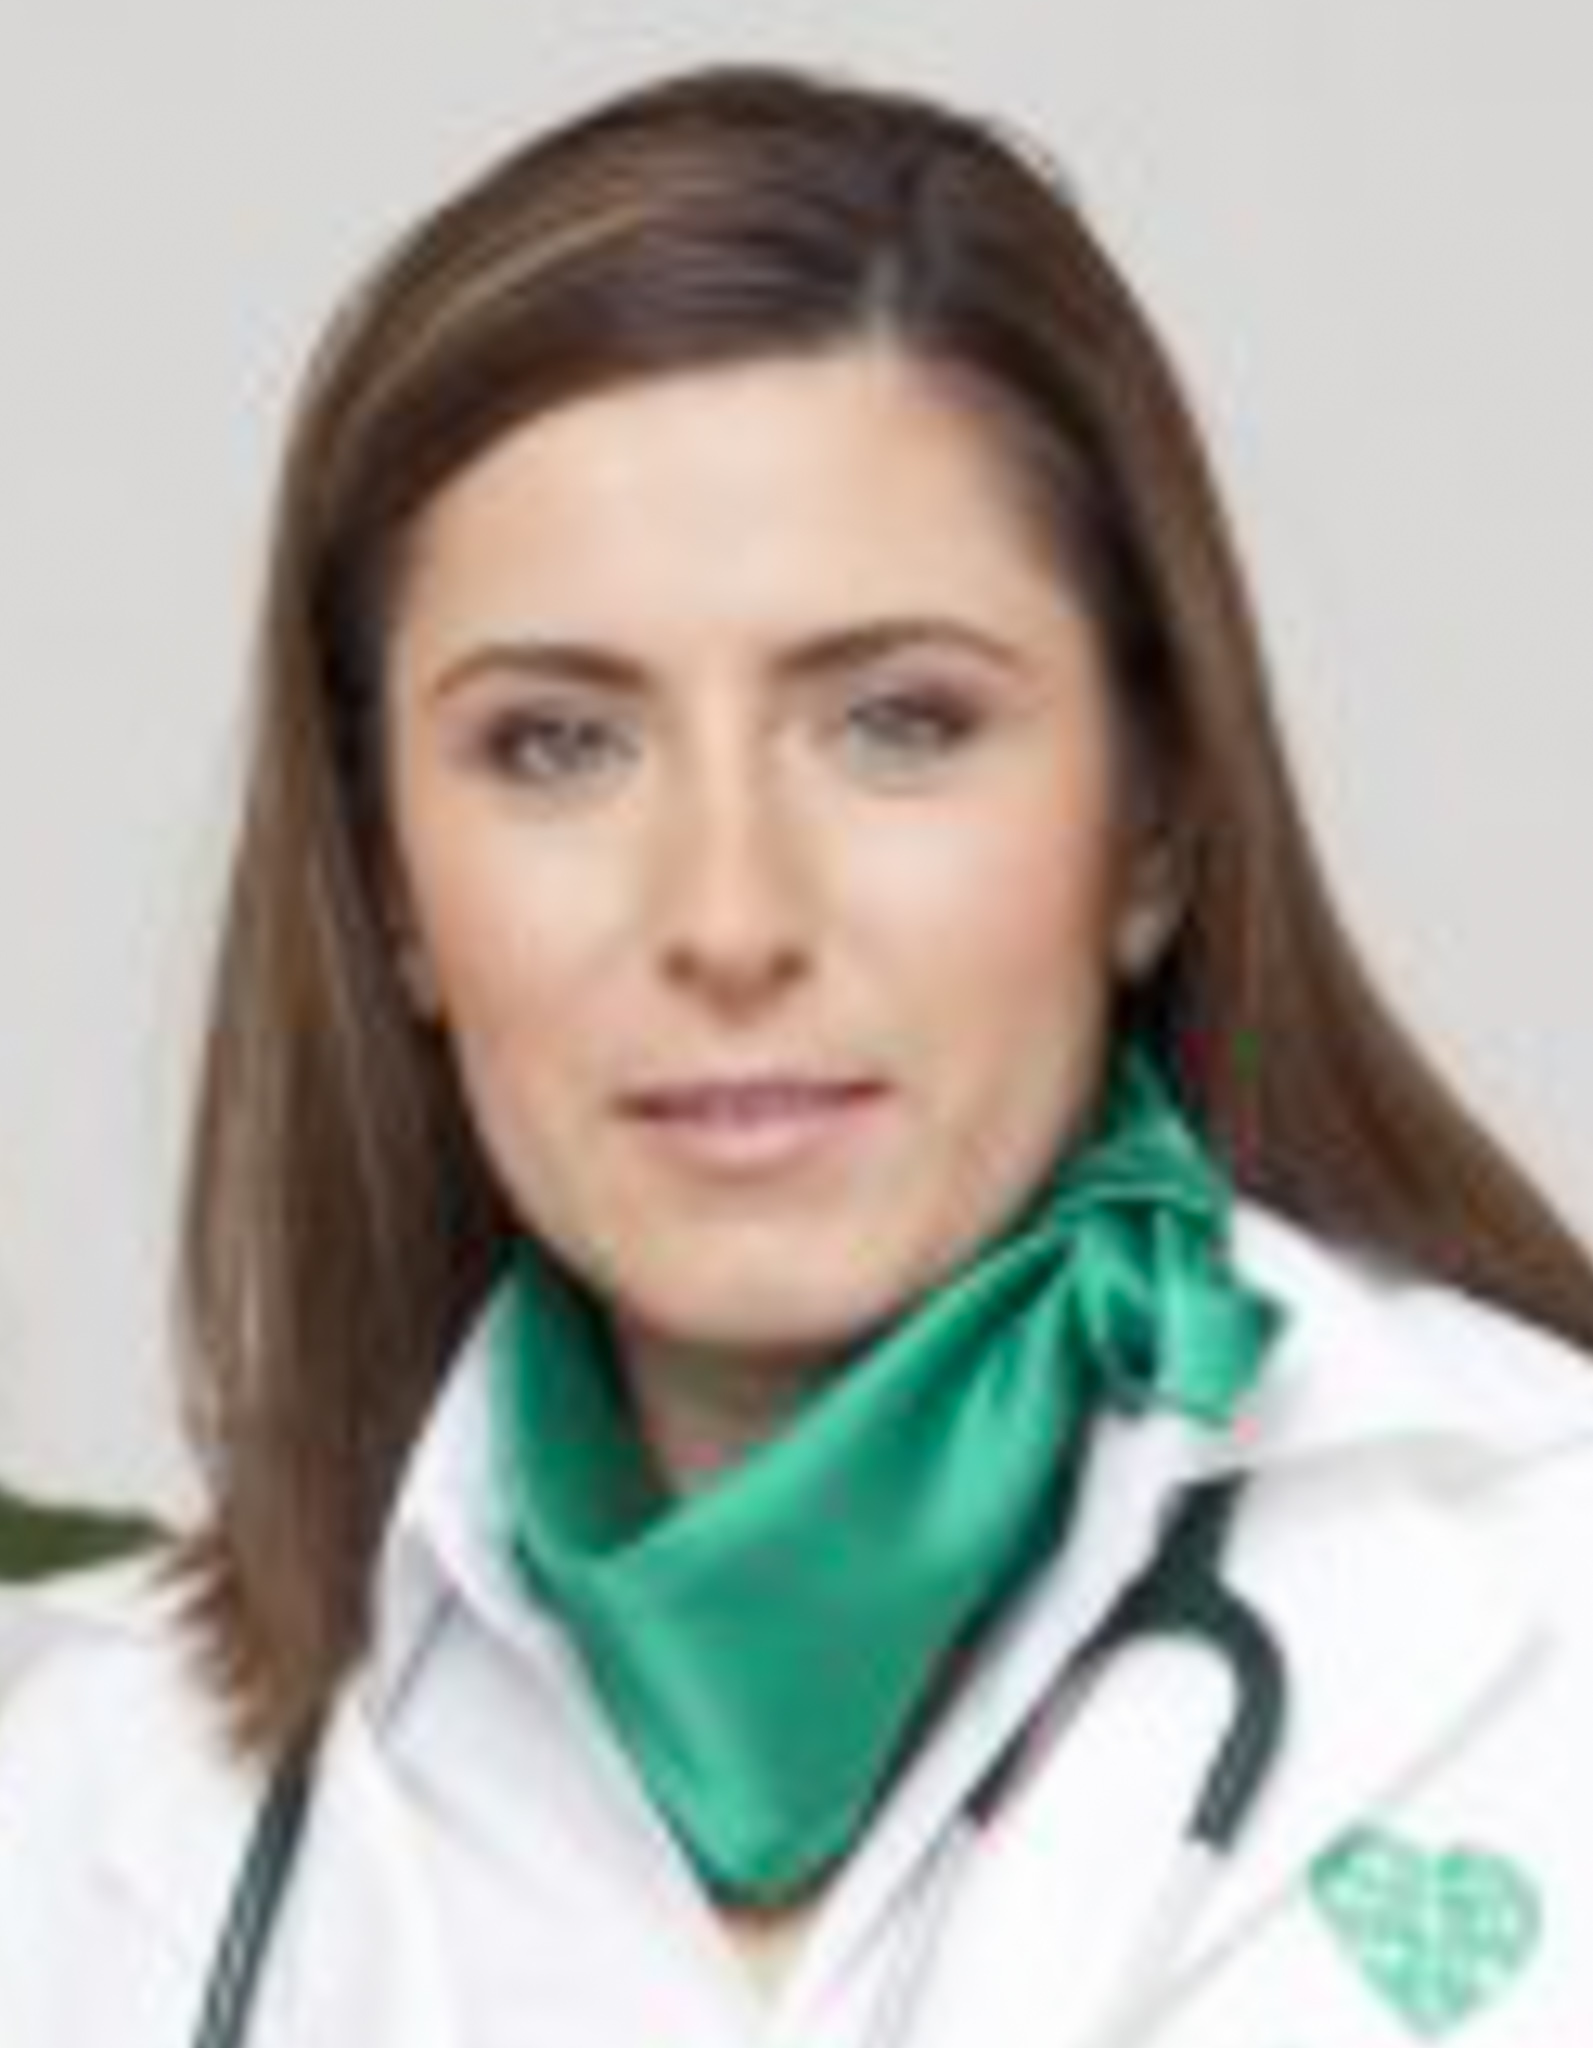 Dr. Conf. Oana Gheorghe-Fronea